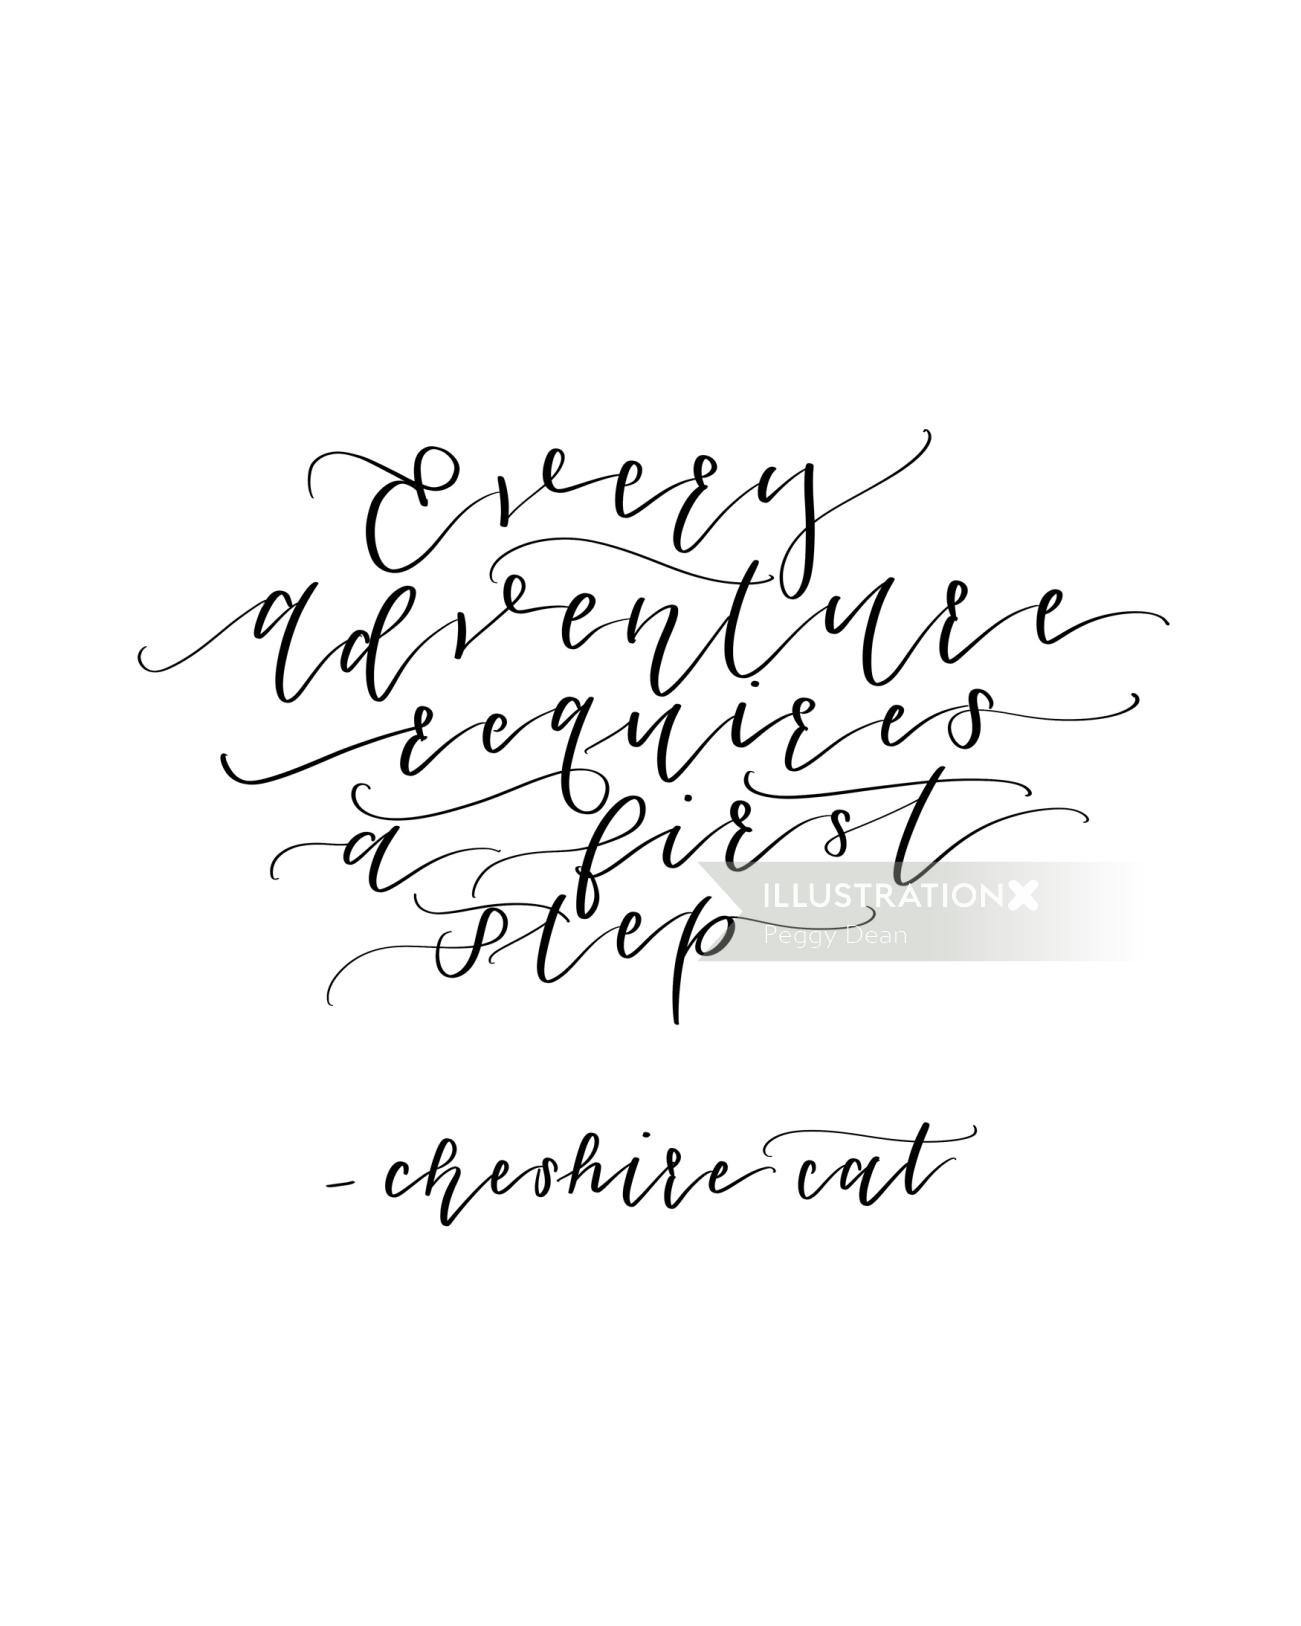 Every adventure requires a first step